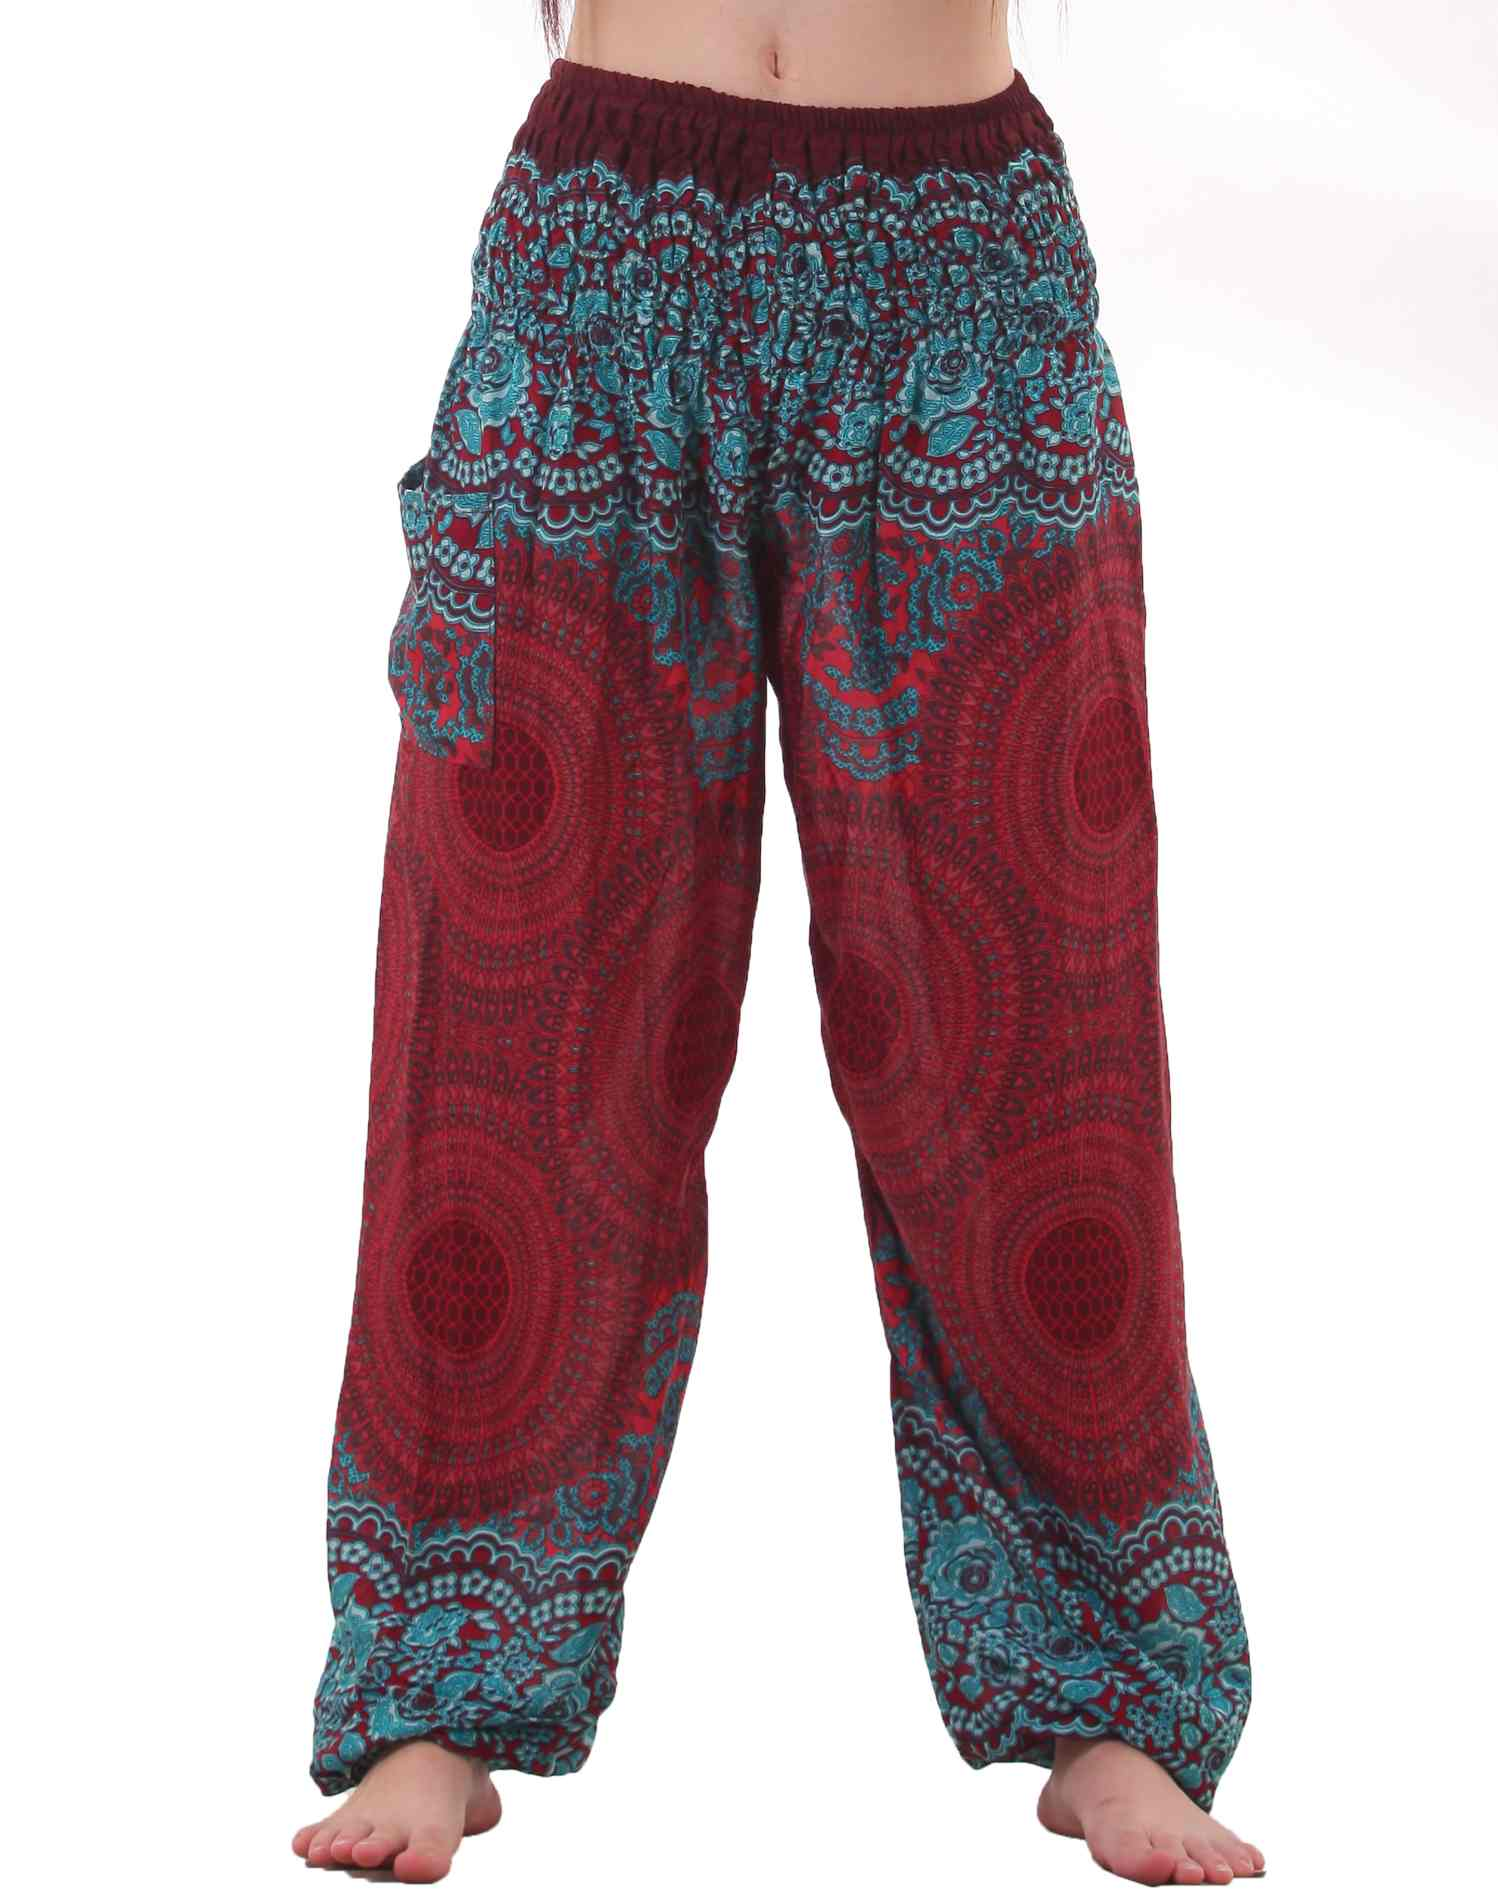 Luxury Mandala Harem Hippie Pants In Turquoise For Women